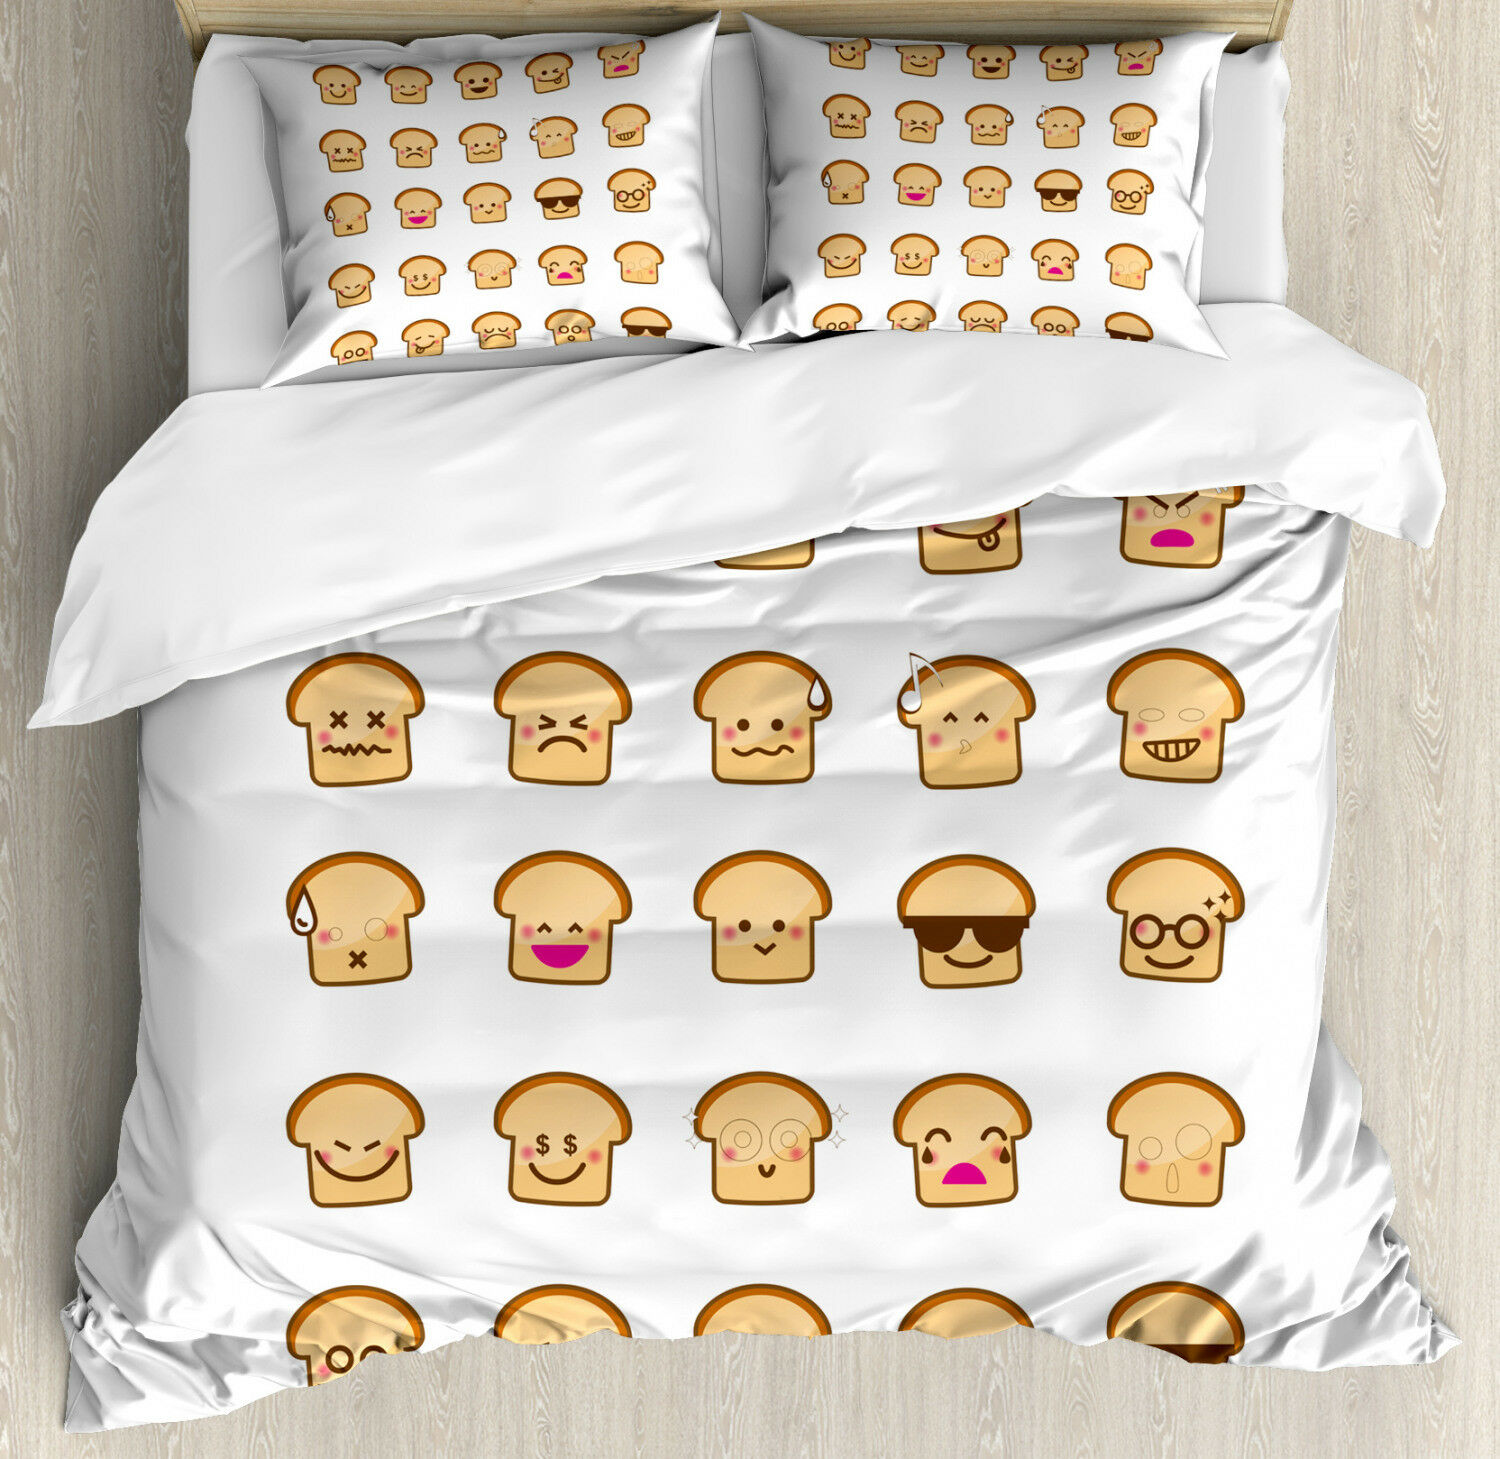 Emoji Duvet Cover Set with Pillow Shams Different Emotions Bread Print